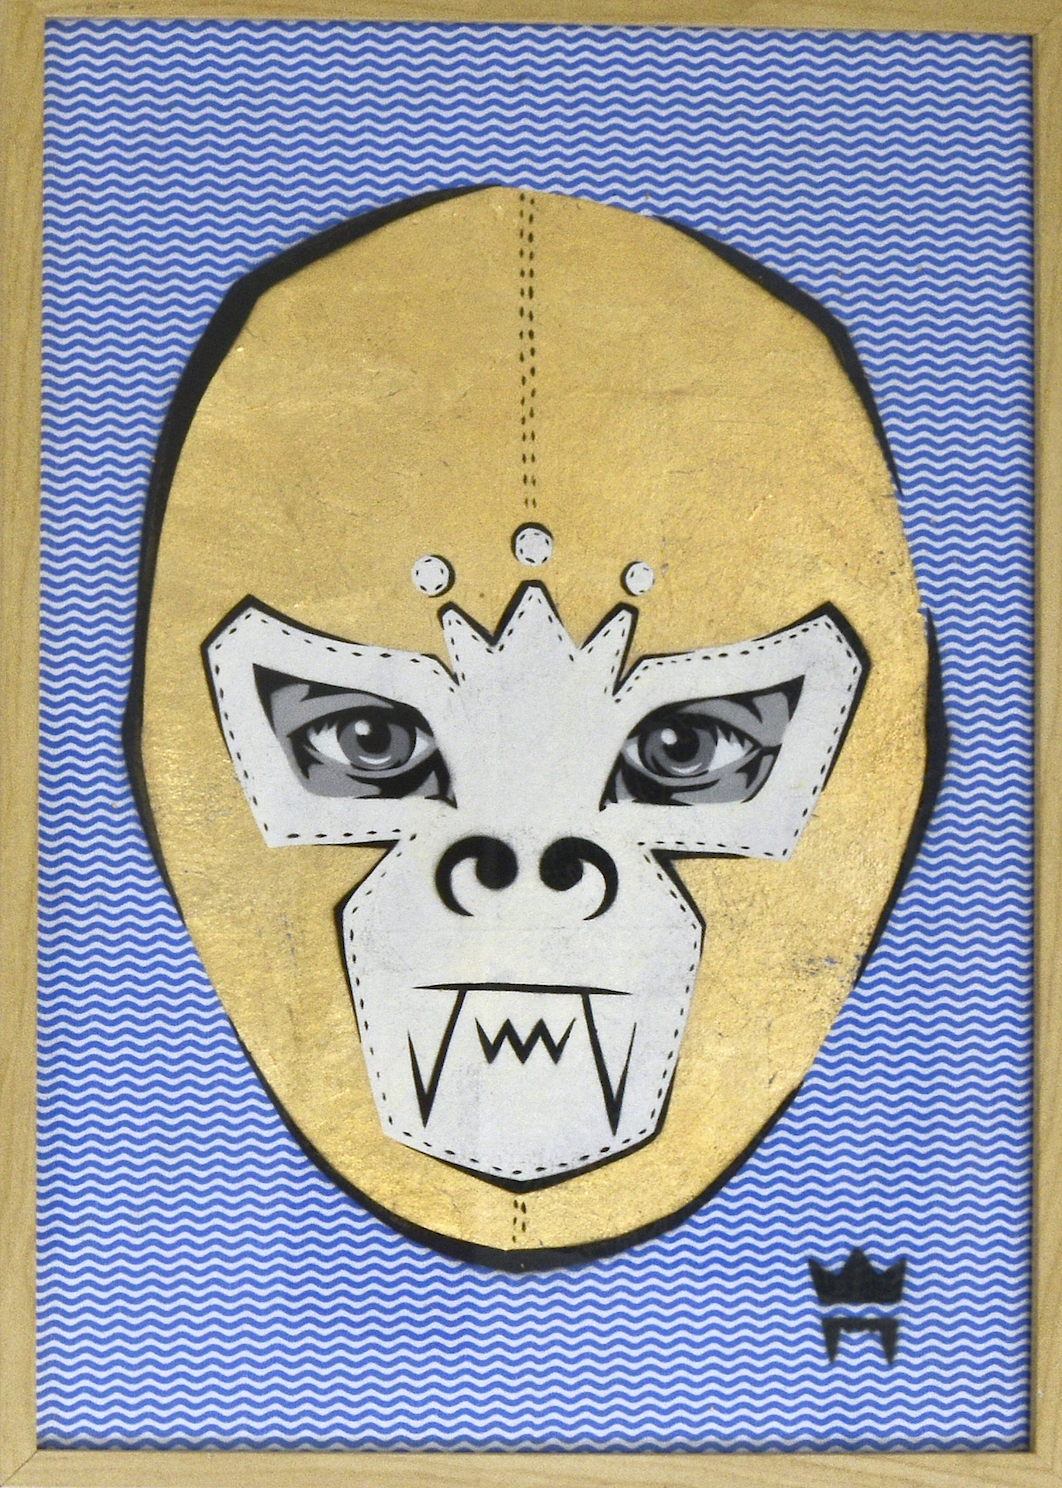 QUEENKONG | Streetart.Limited